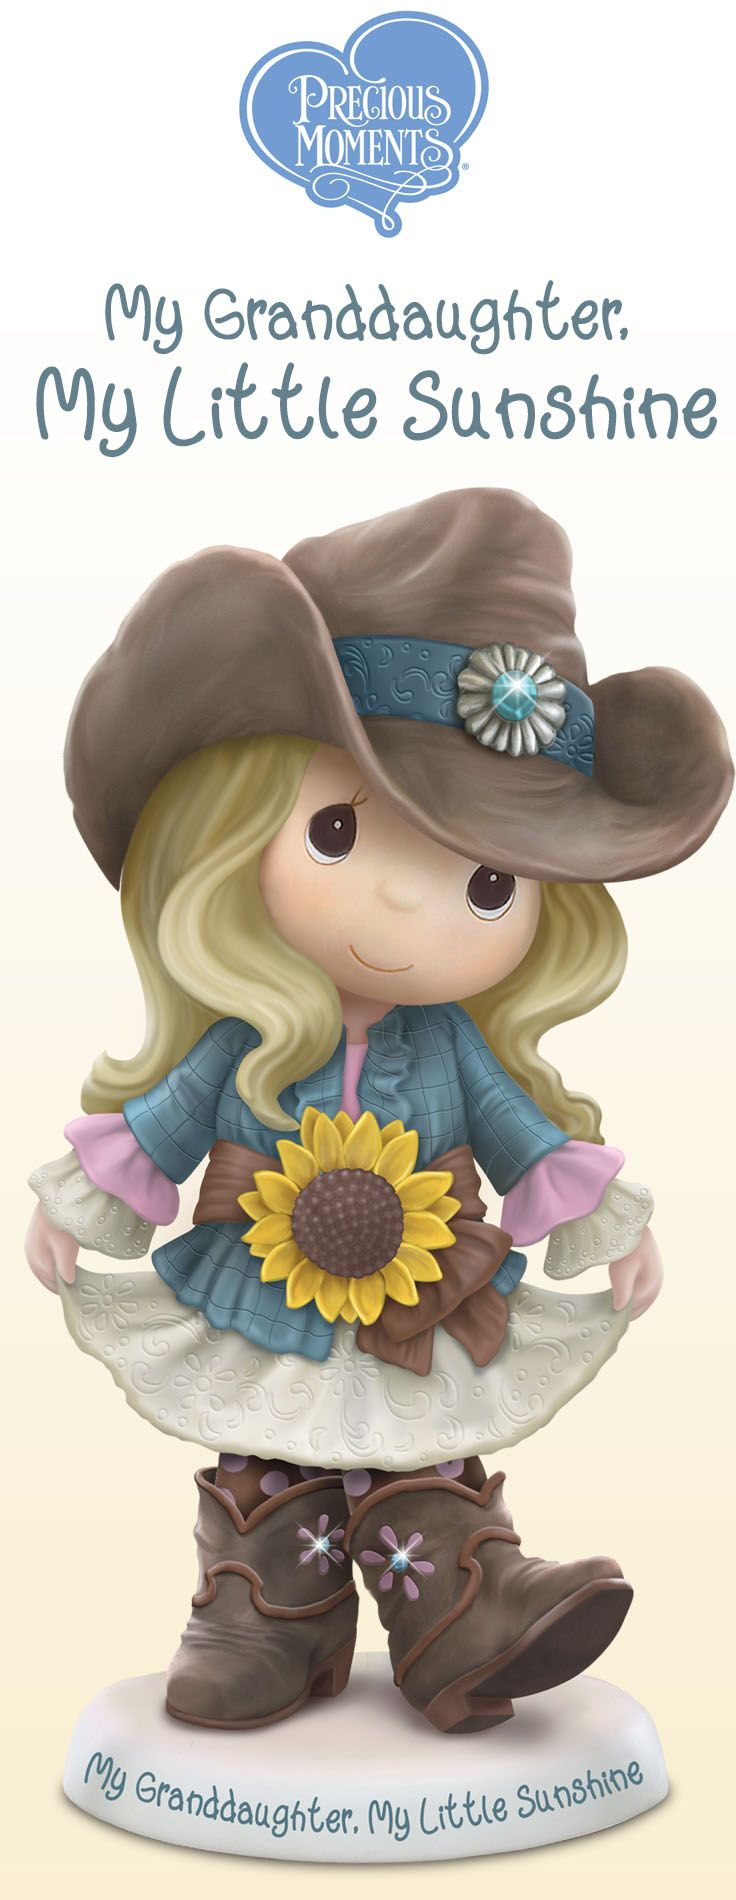 Bring home a little ray of sunshine and adorable country charm with this perfect Precious Moments granddaughter figurine!